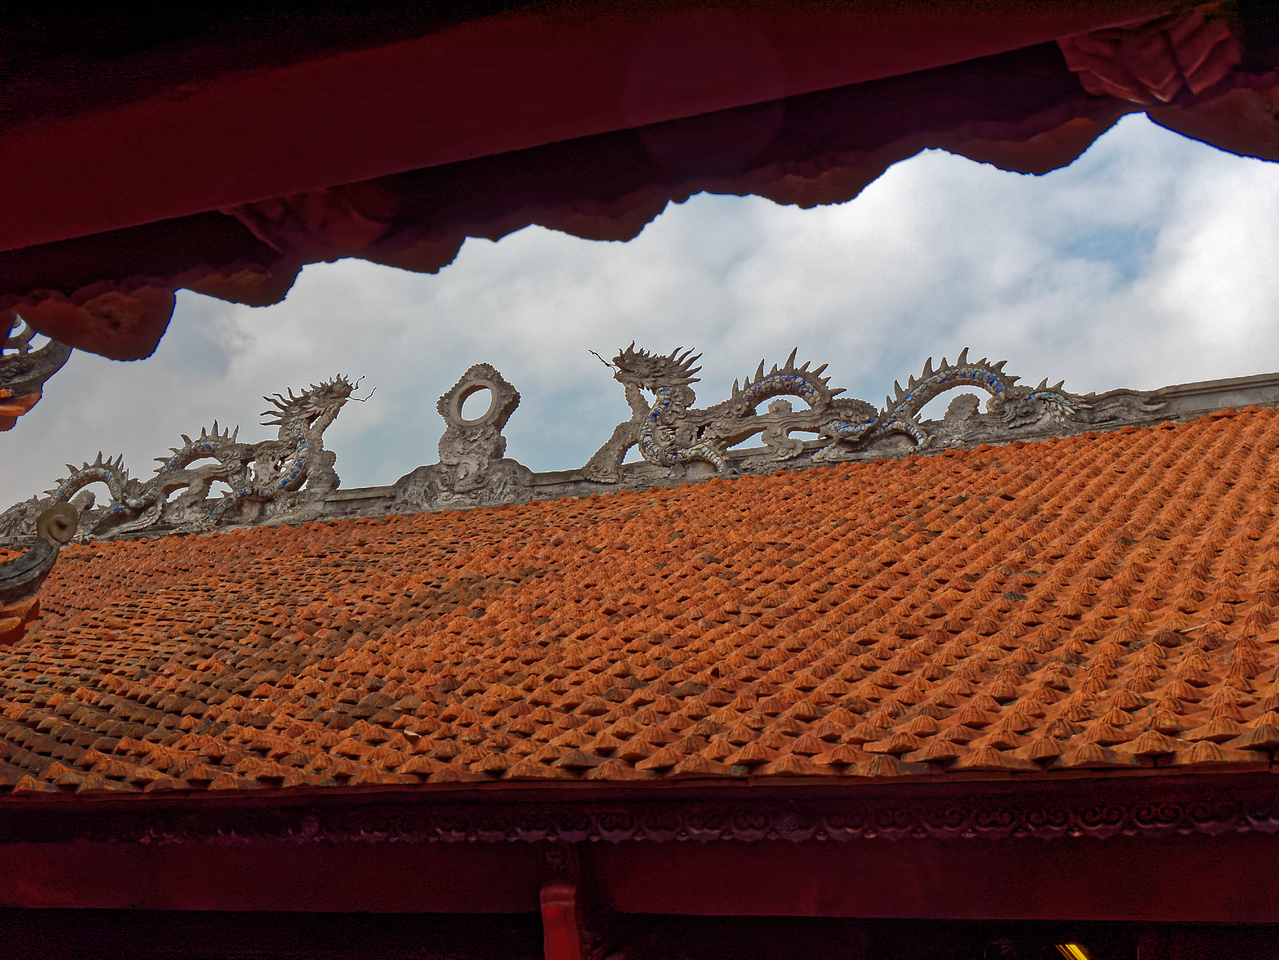 Dragons on the roof at the Temple of Literature